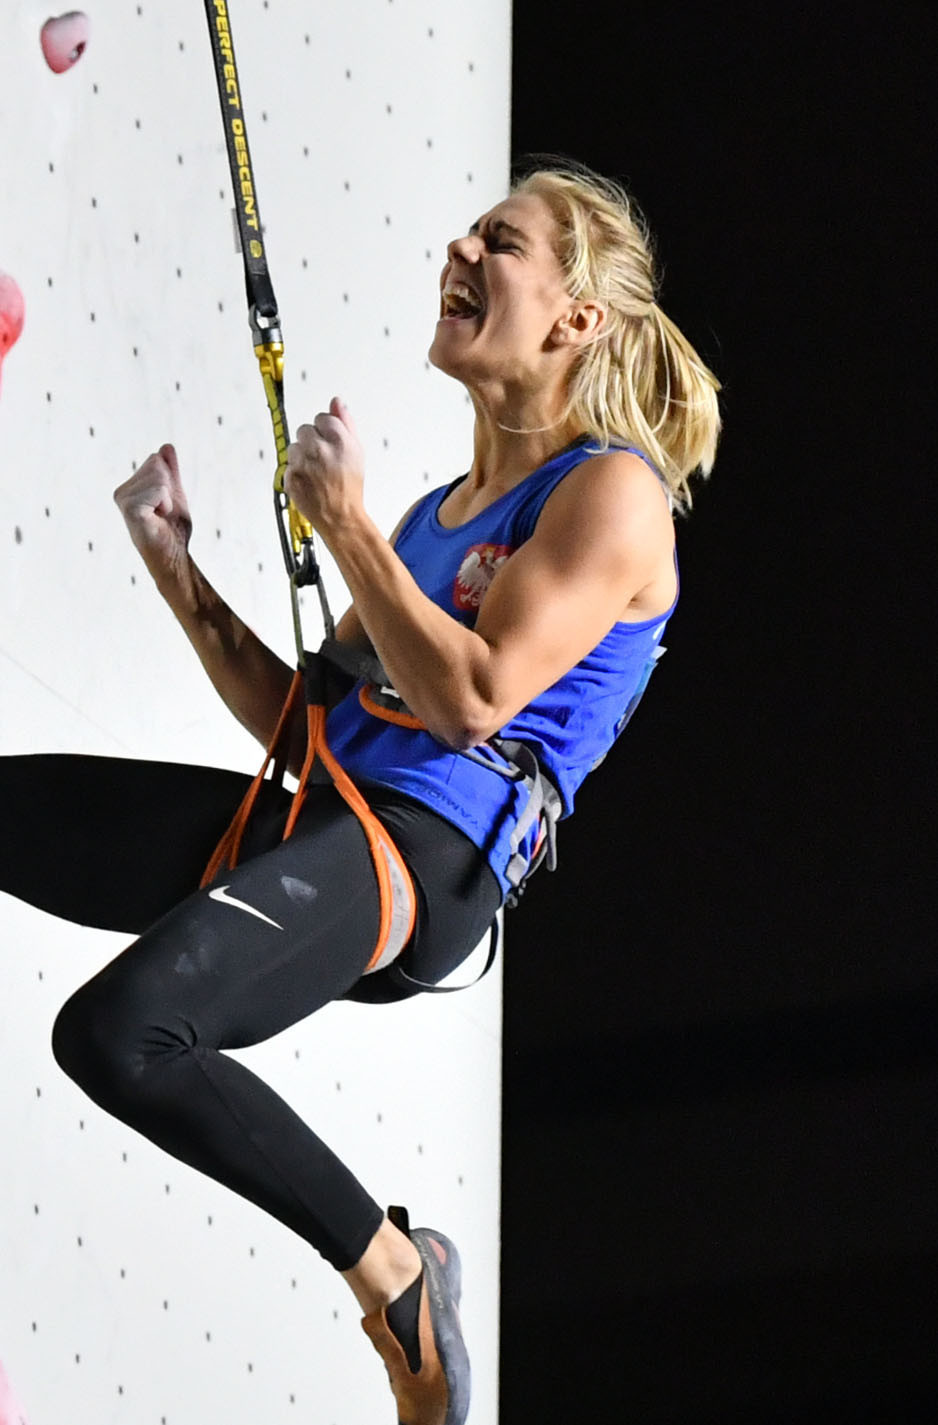 Miroslaw retains speed title at IFSC Climbing World Championships